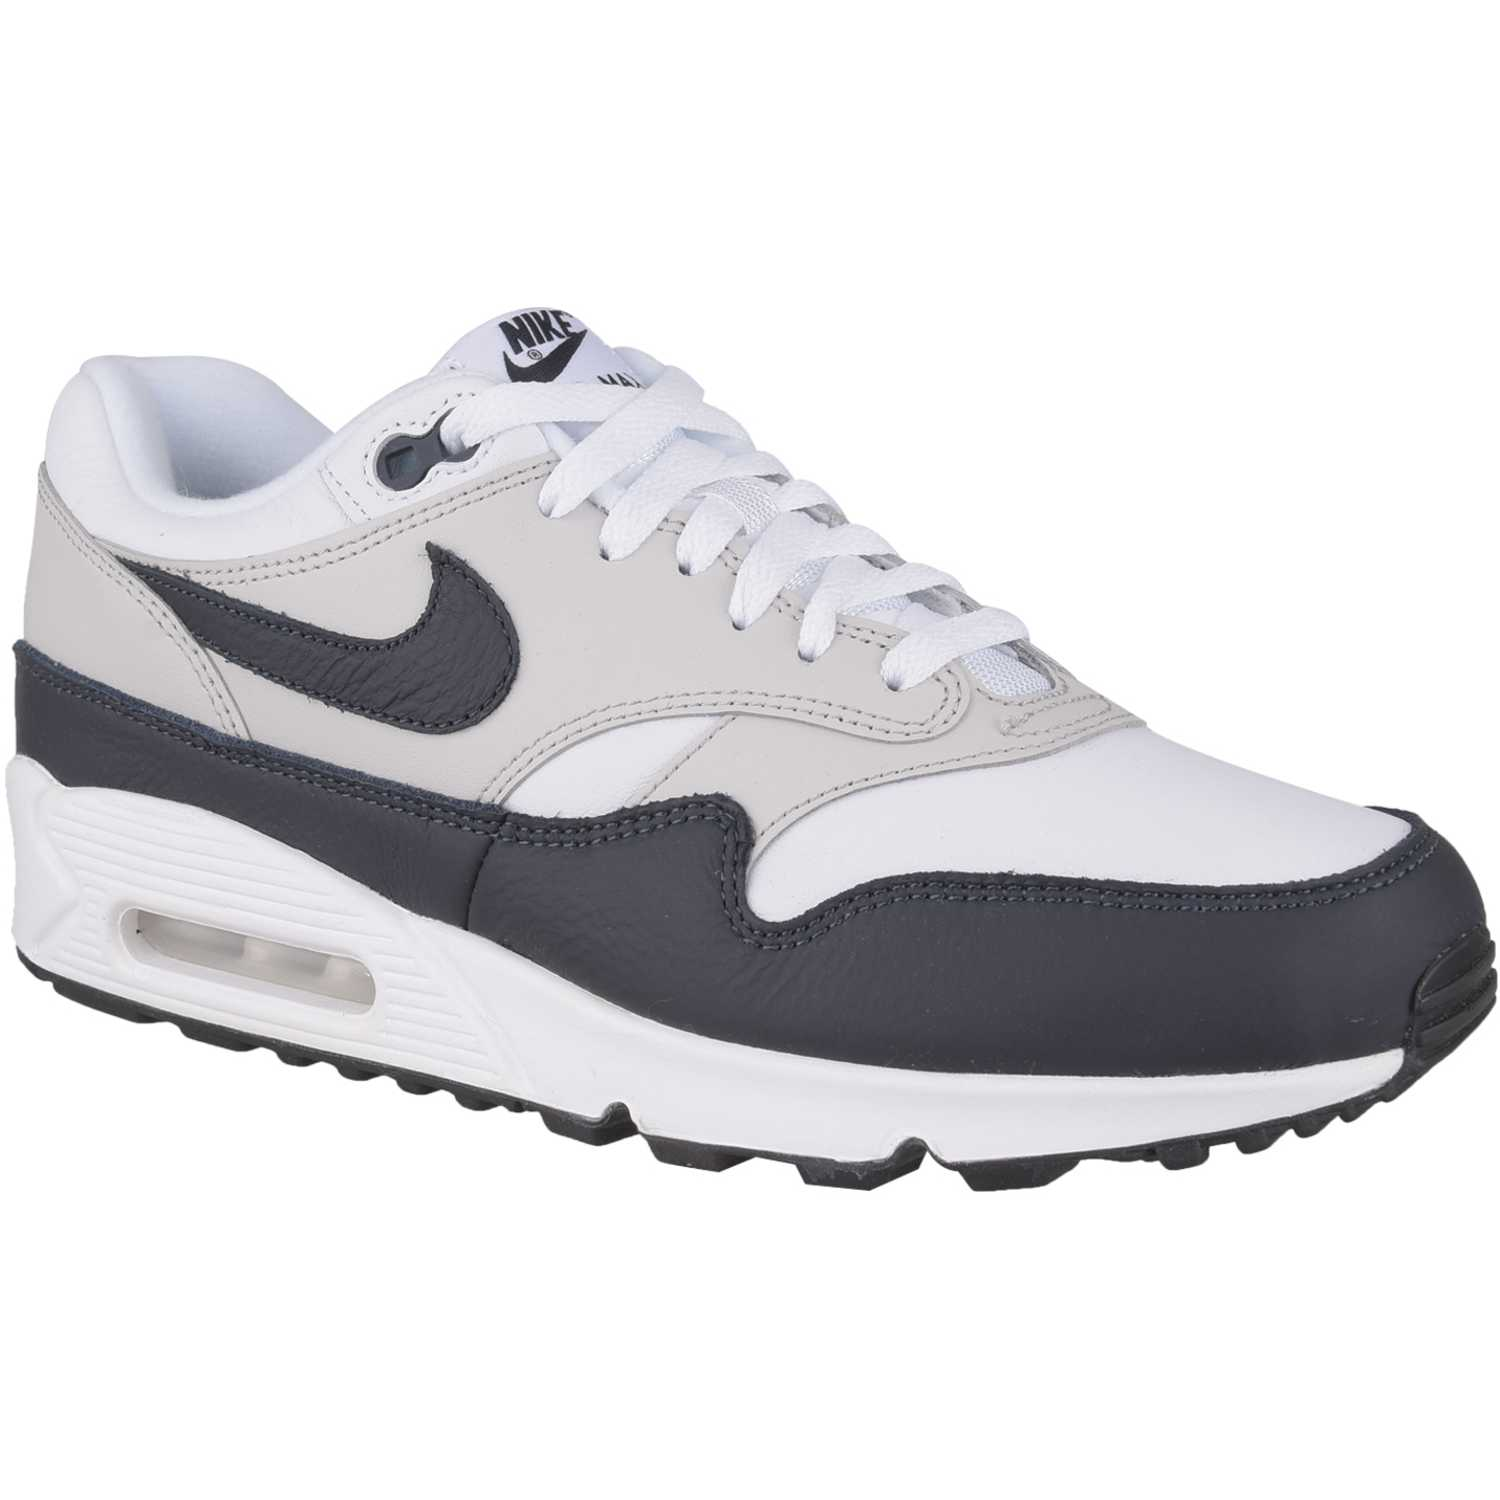 Frenesí Perca Flexible  Nike air max 90/1 Blanco / negro Walking | platanitos.com